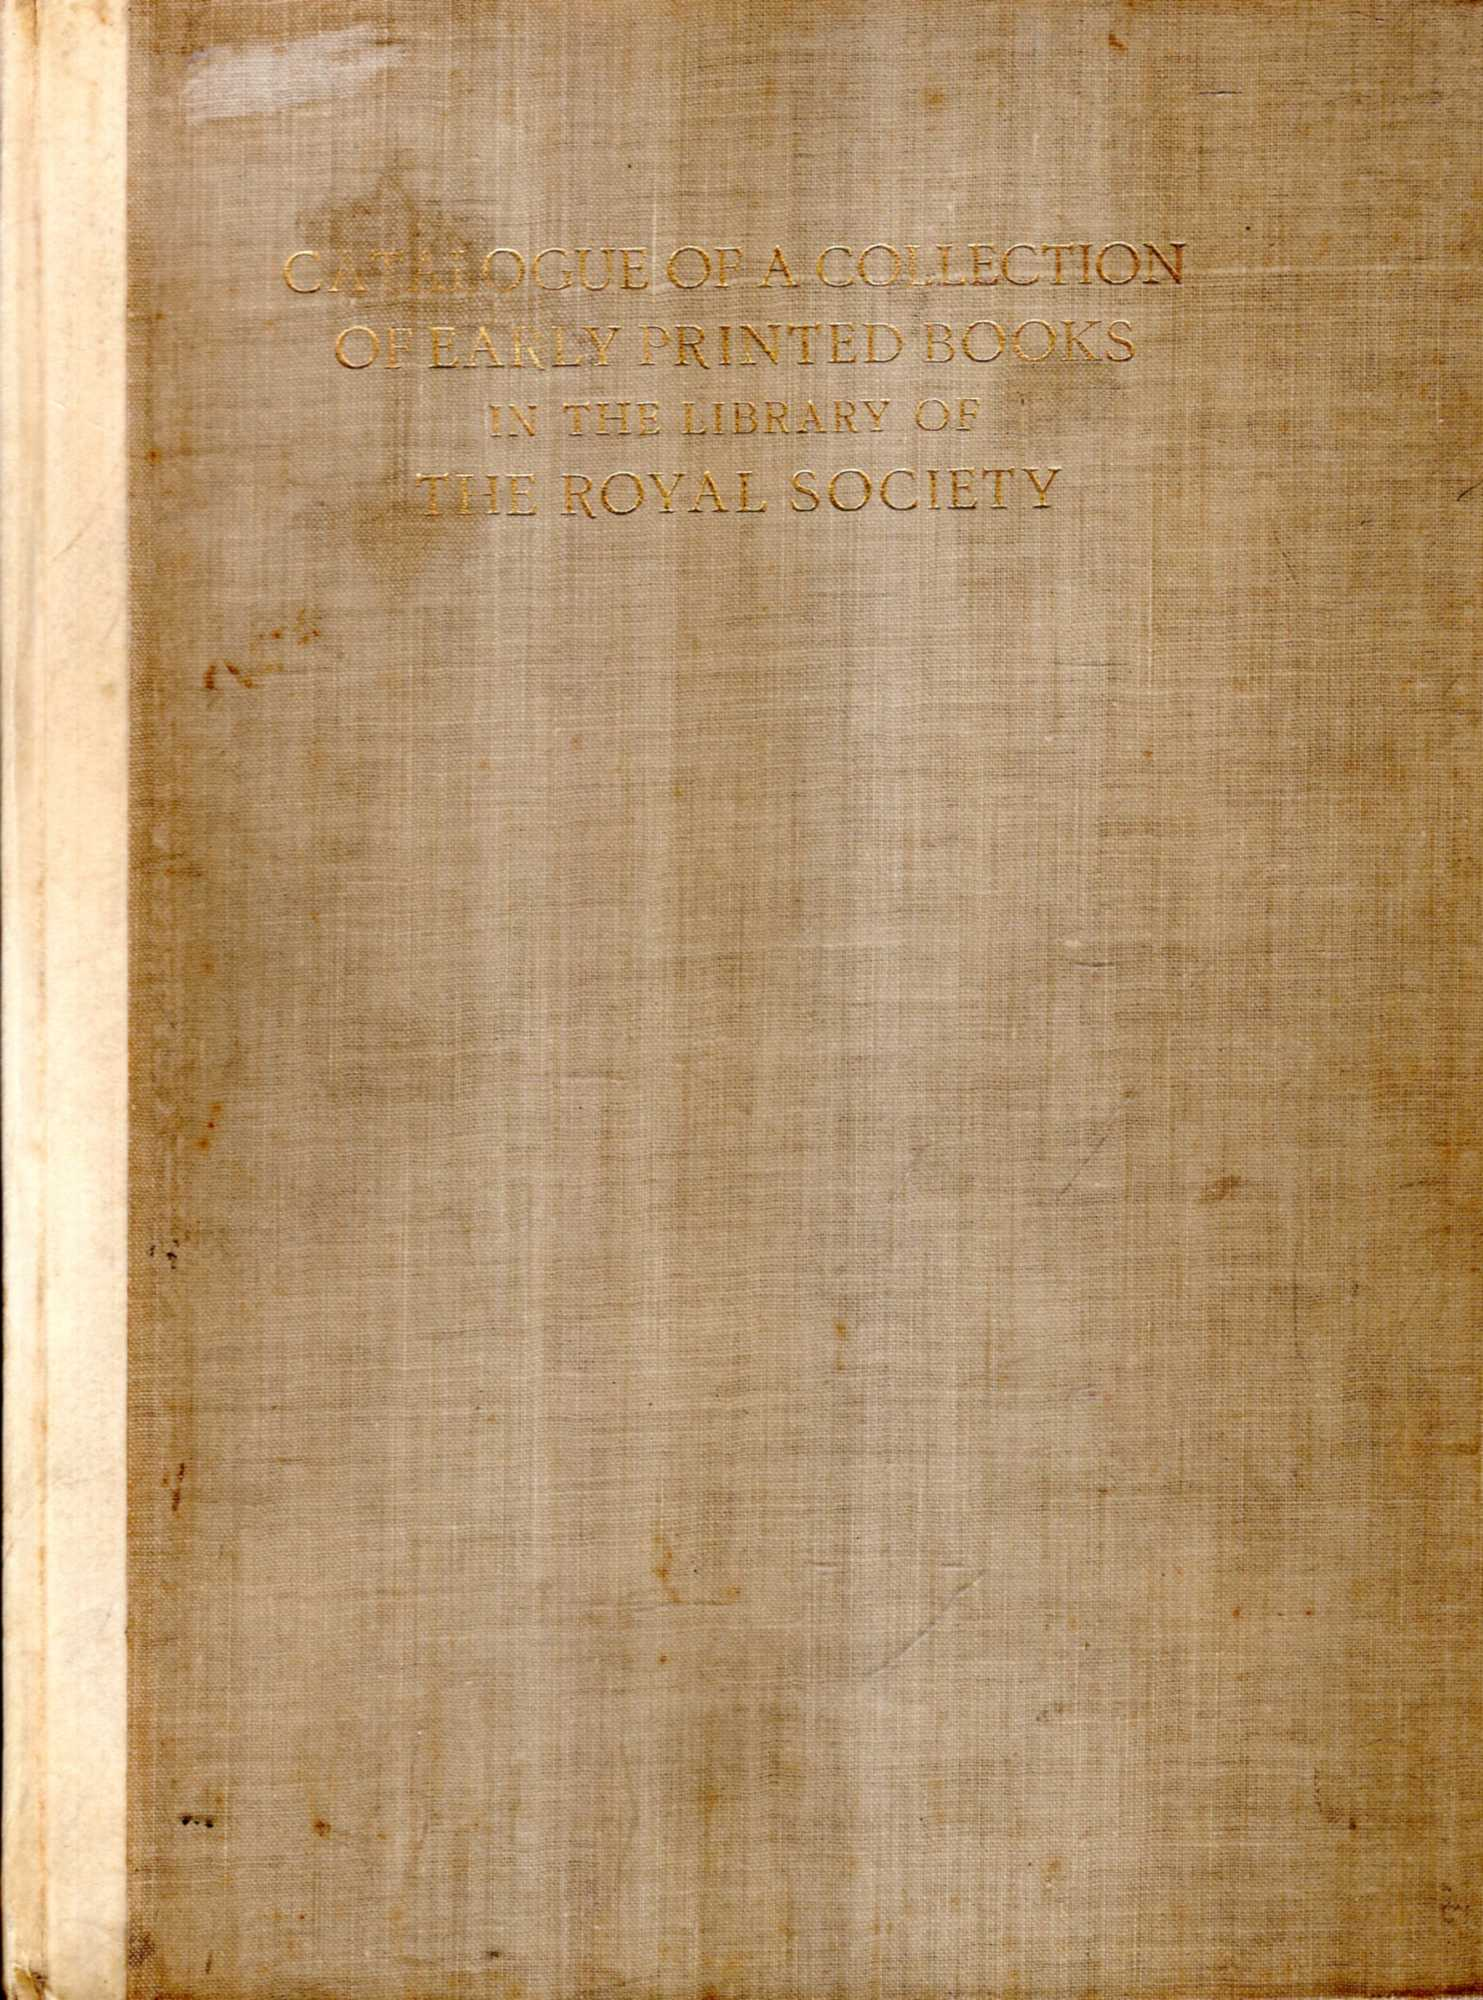 Image for Catalogue of a Collection of Early Printed Books in the Library of the Royal Society